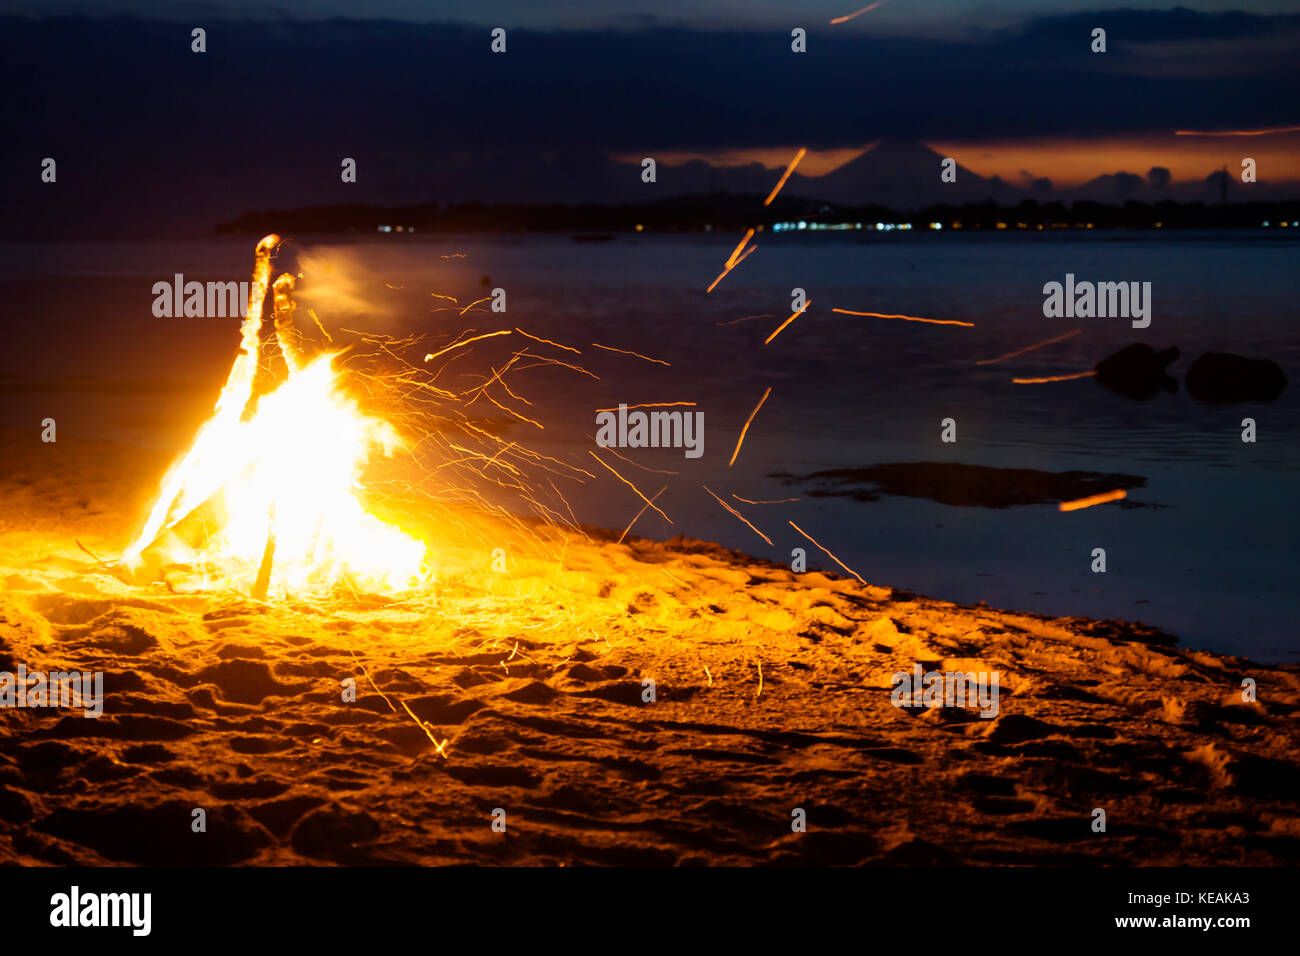 Bonfire at the beach of Gili Air with flying sparks and volcano Agung of Bali in the background - Stock Image